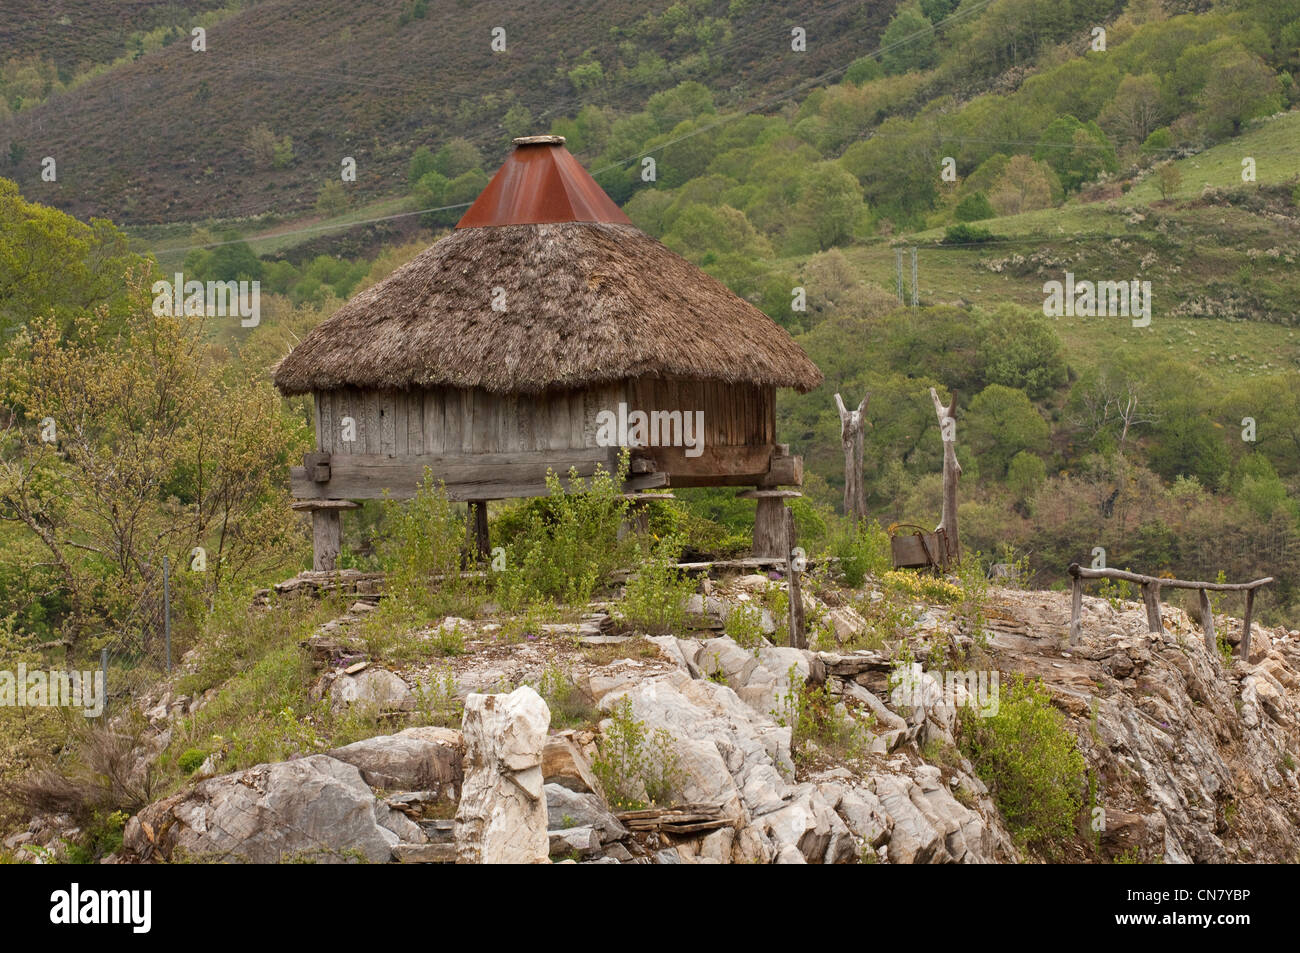 Spain, Galicia, O Cebreiro, village of traditional thatch roofed houses, or pallozas - Stock Image